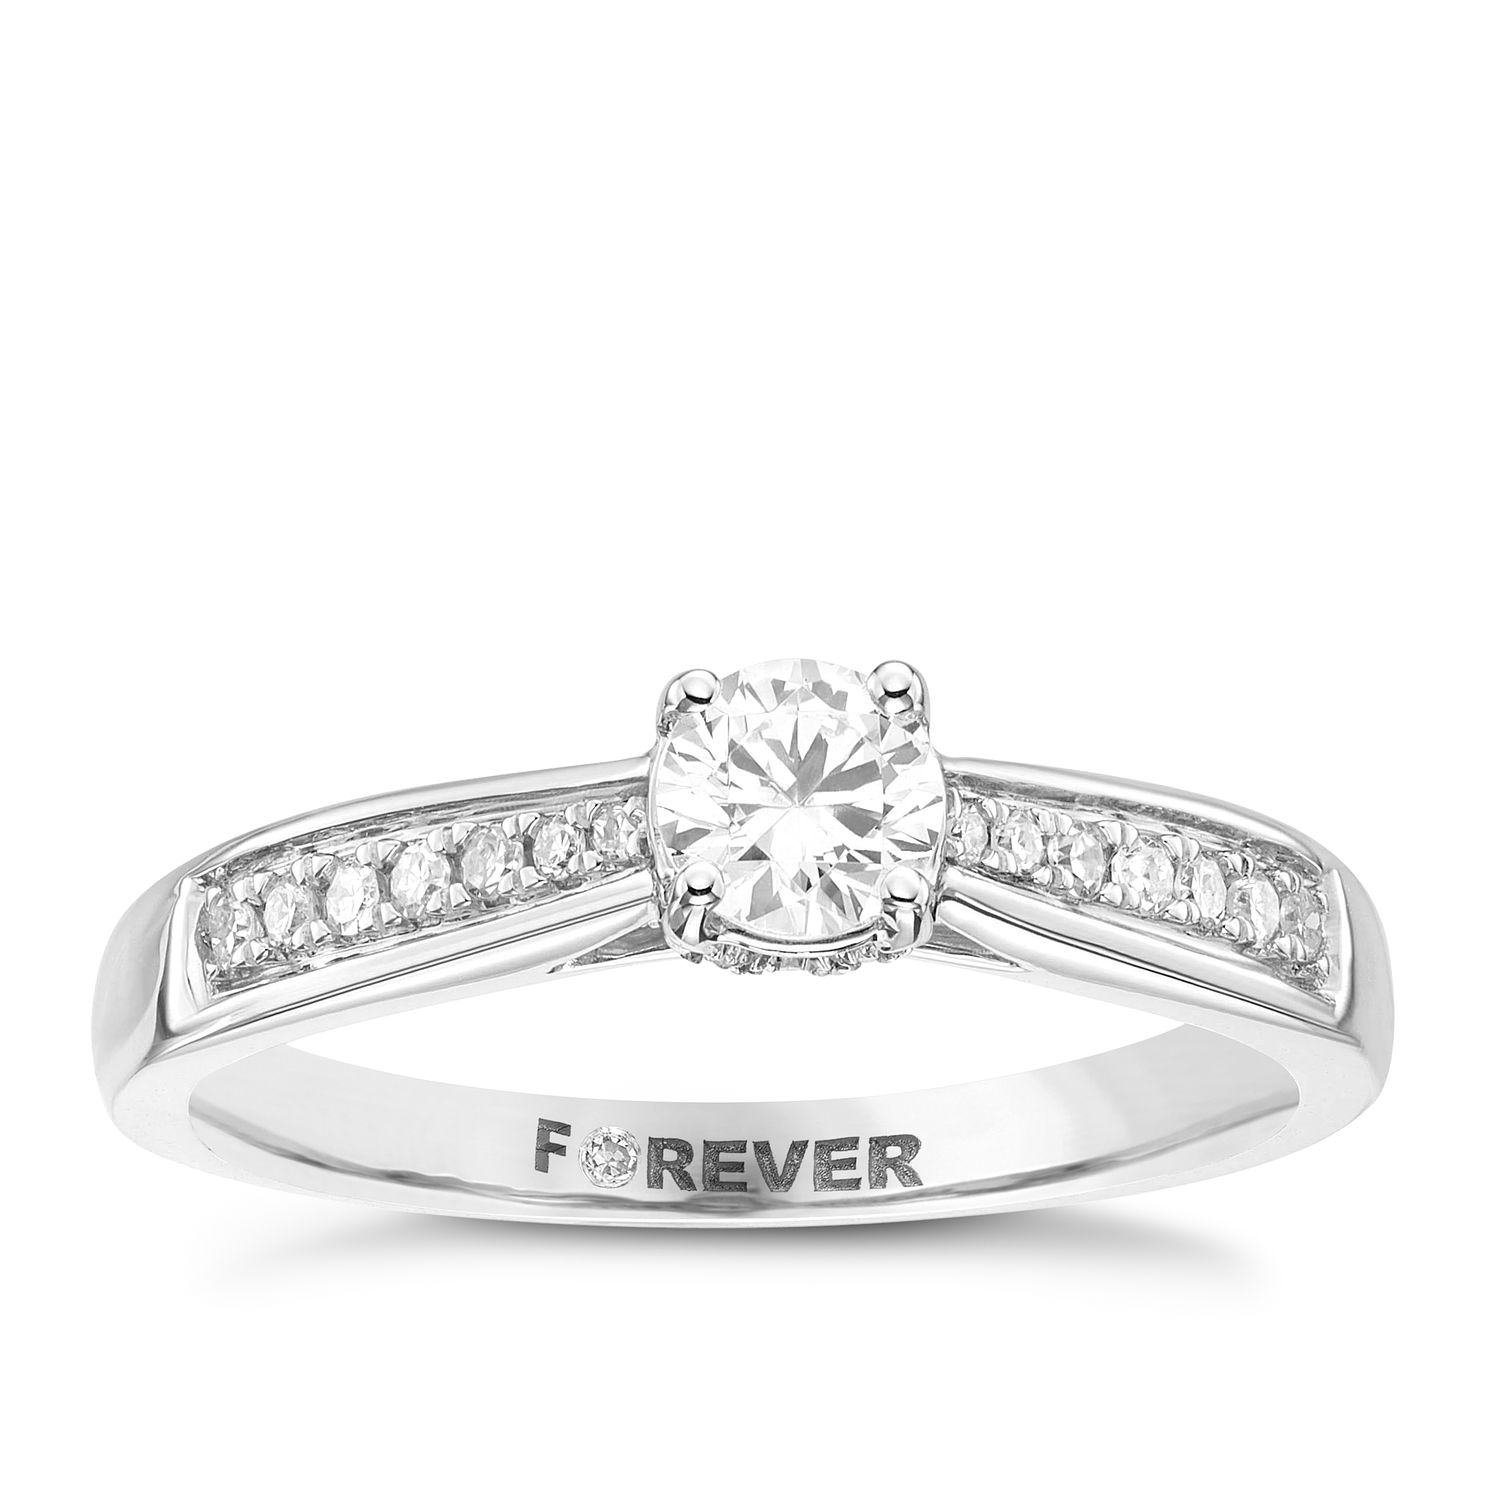 forever rings plated silver love products lovers couple ring wedding new fashion commitment pcs jewelry